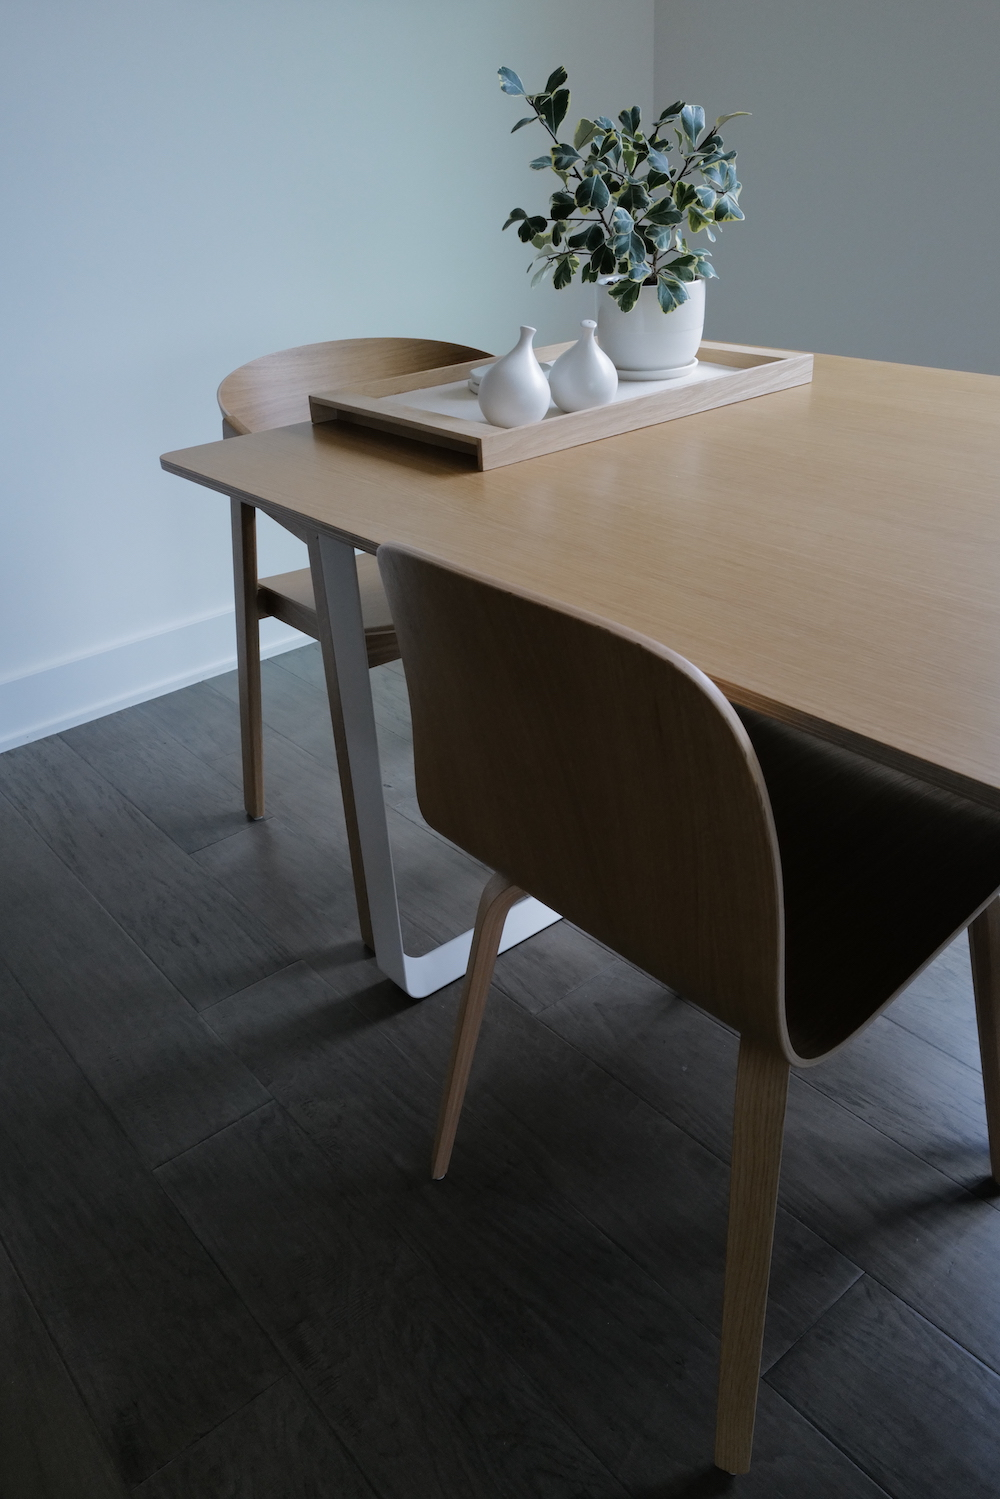 A picture of a table and chairs at an angle.